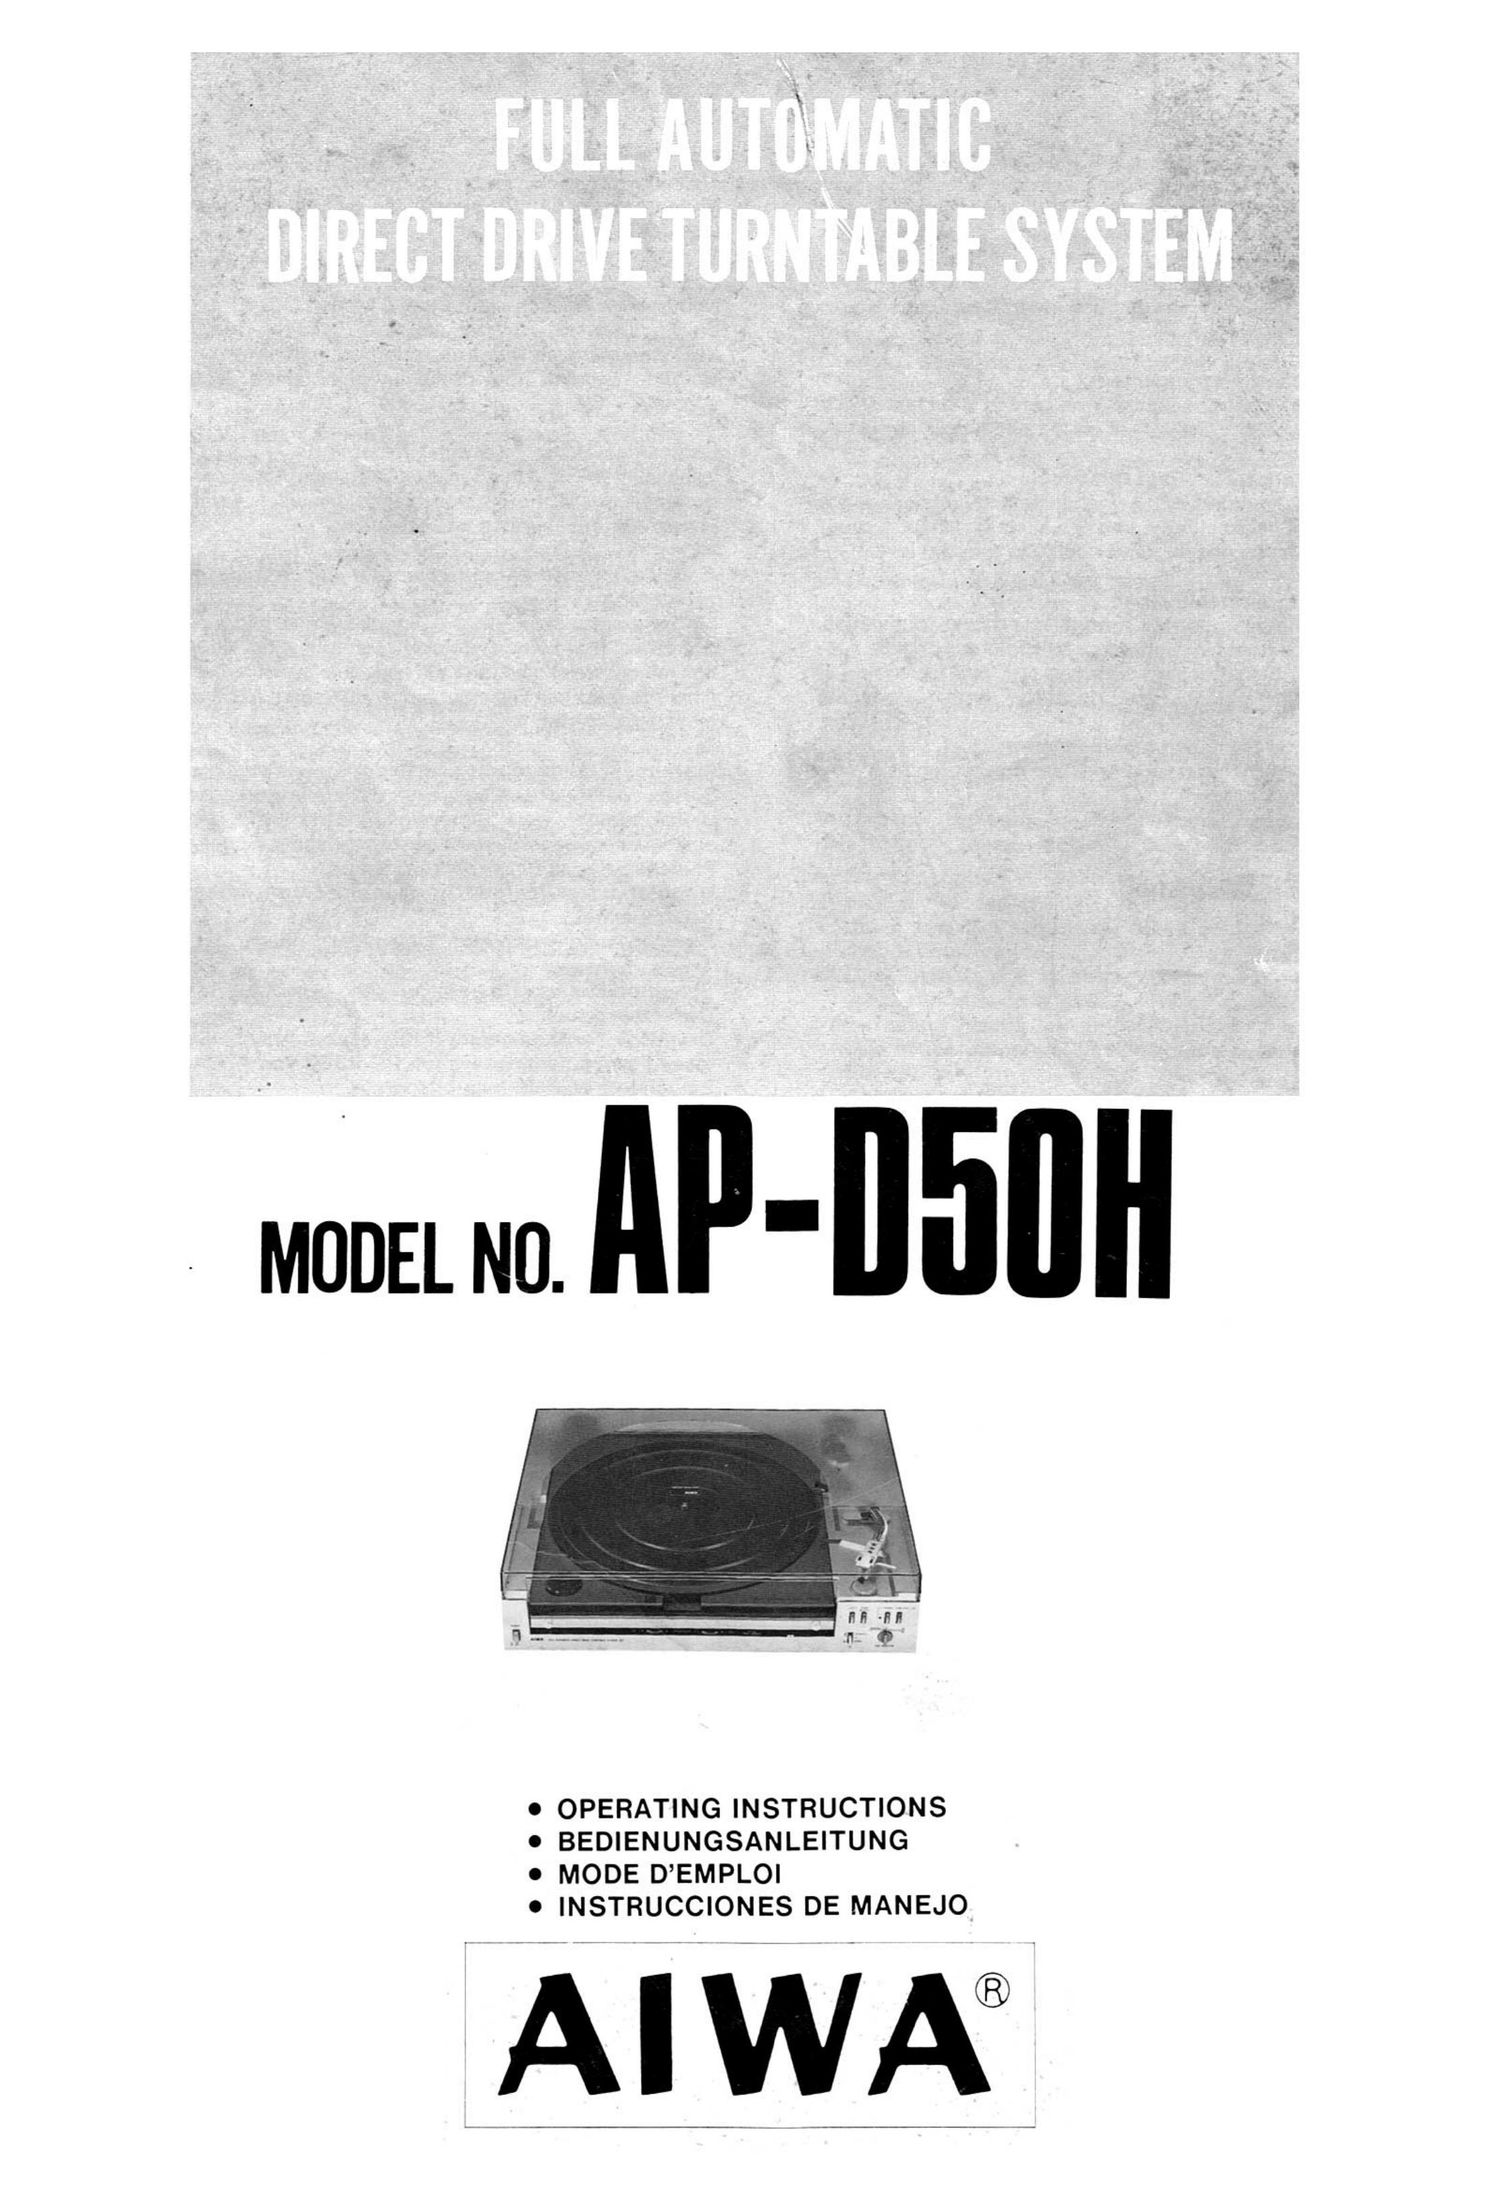 Aiwa AP D50H Owners Manual